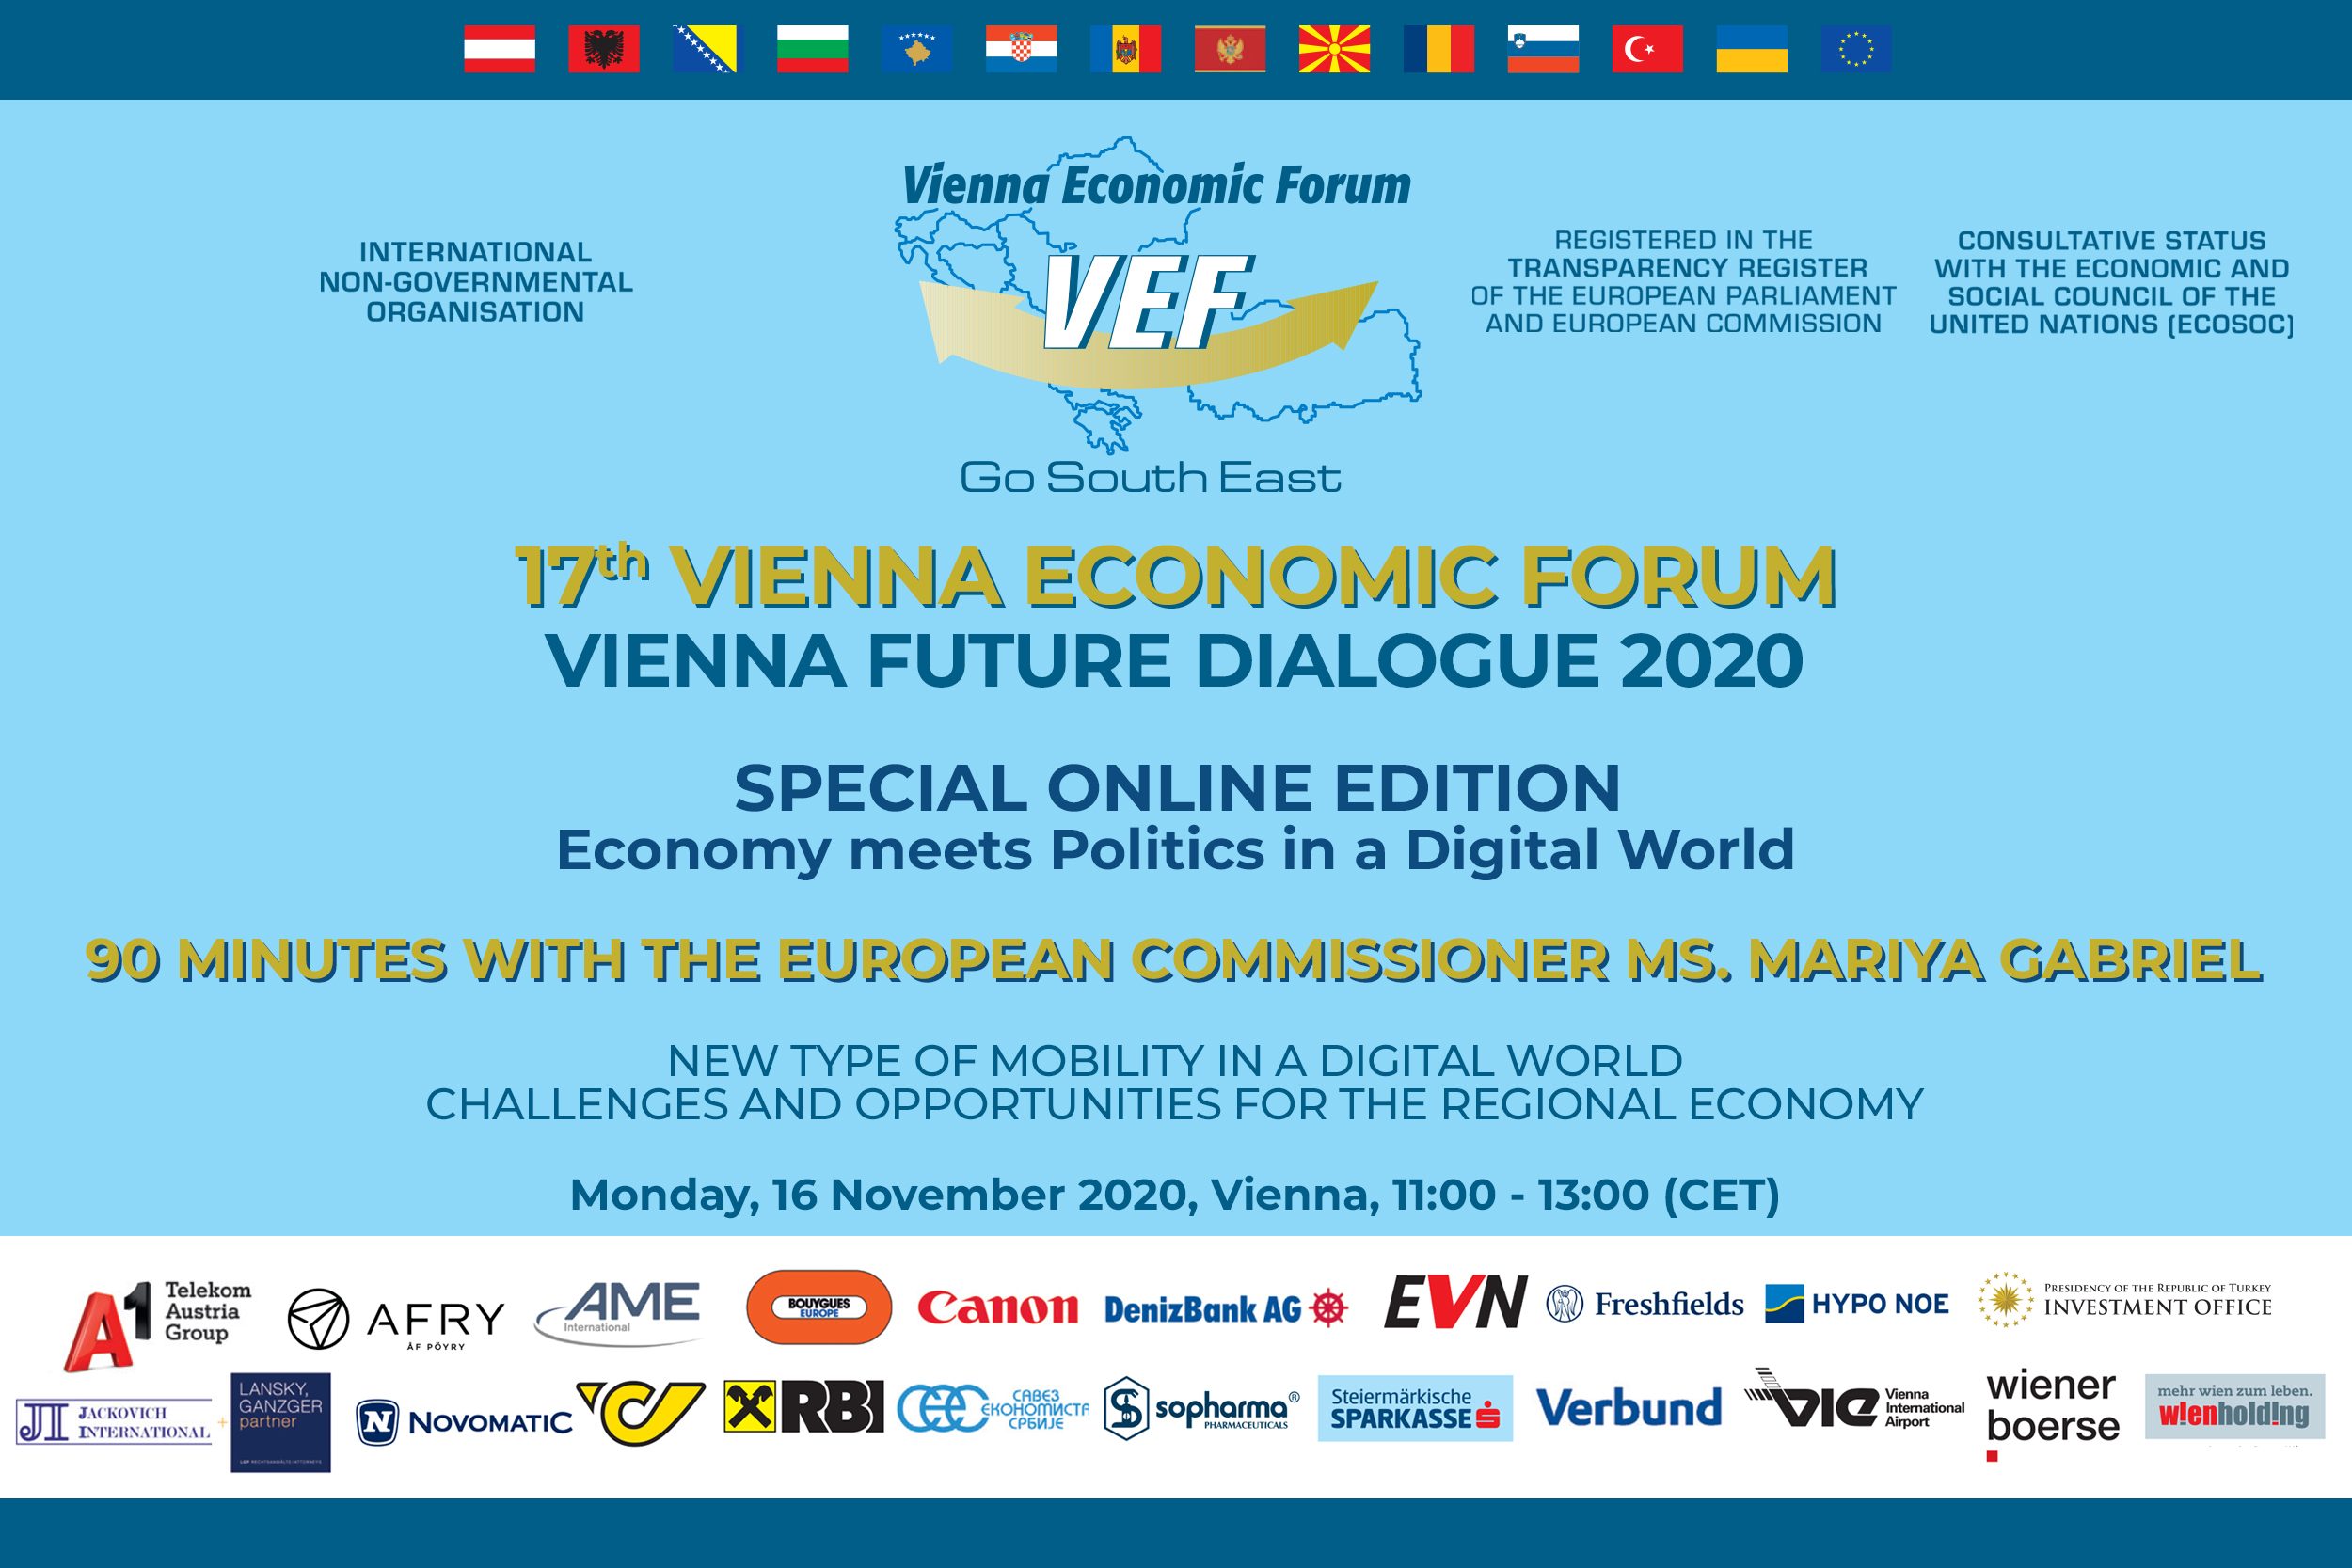 17th Vienna Economic Forum web banner 2500x1667pix